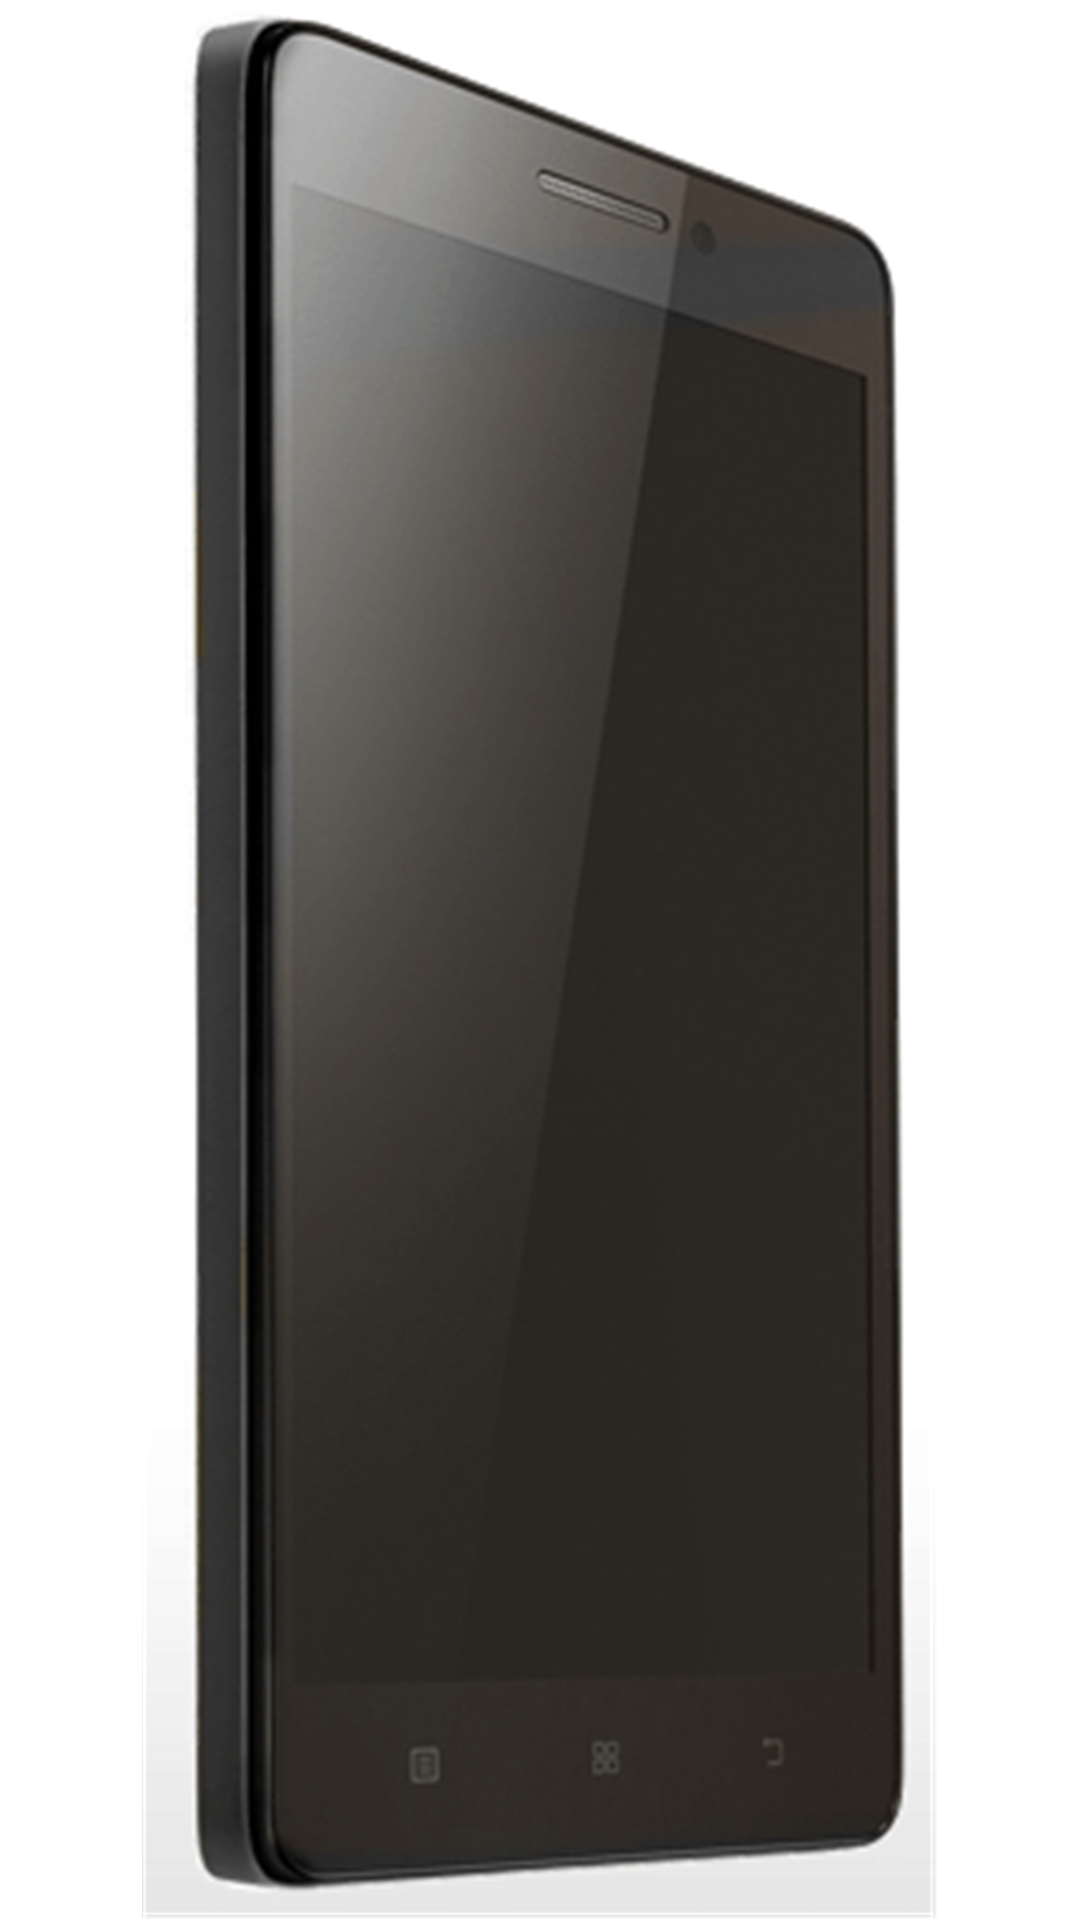 Lenovo A7000 Turbo (16GB, Matte Black)